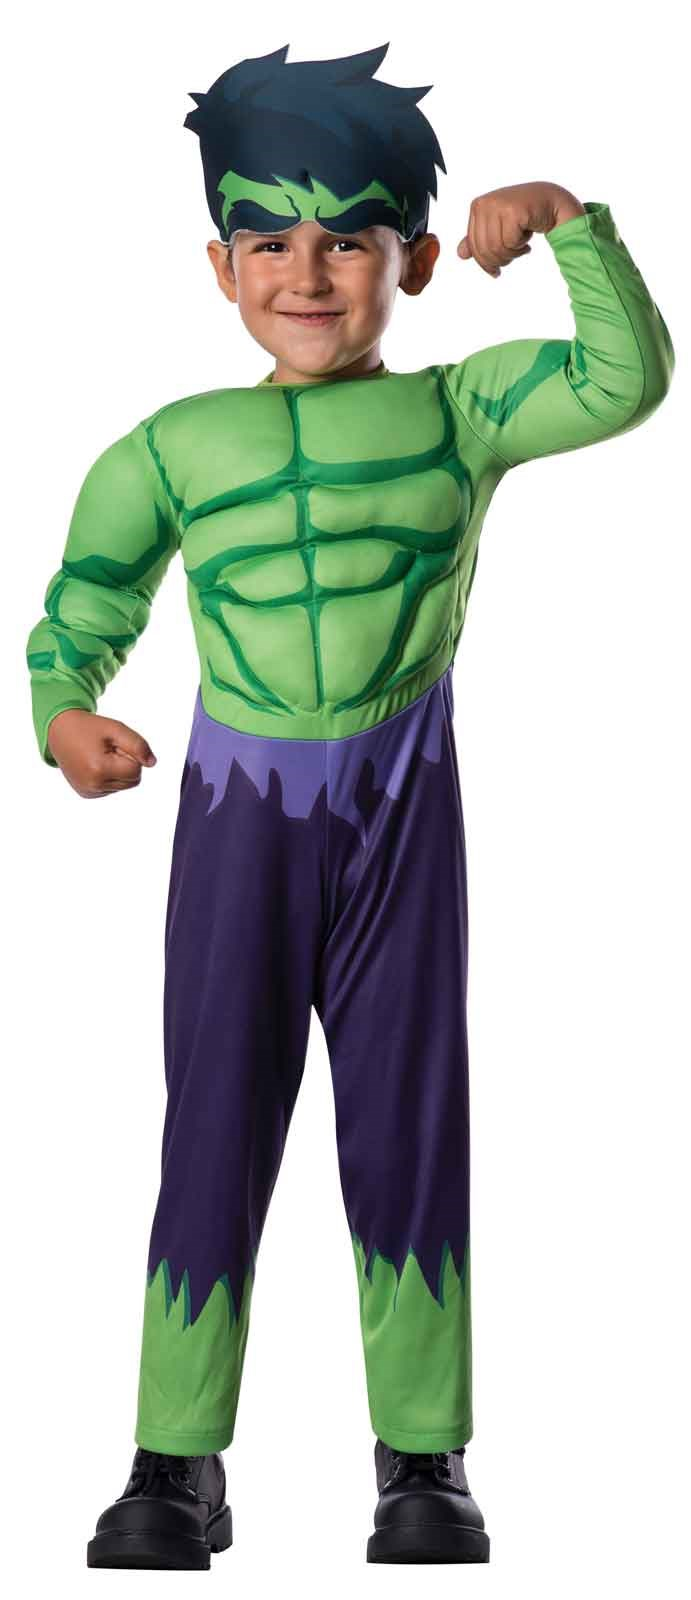 Avengers Assemble Hulk Toddler Costume | BuyCostumes.com